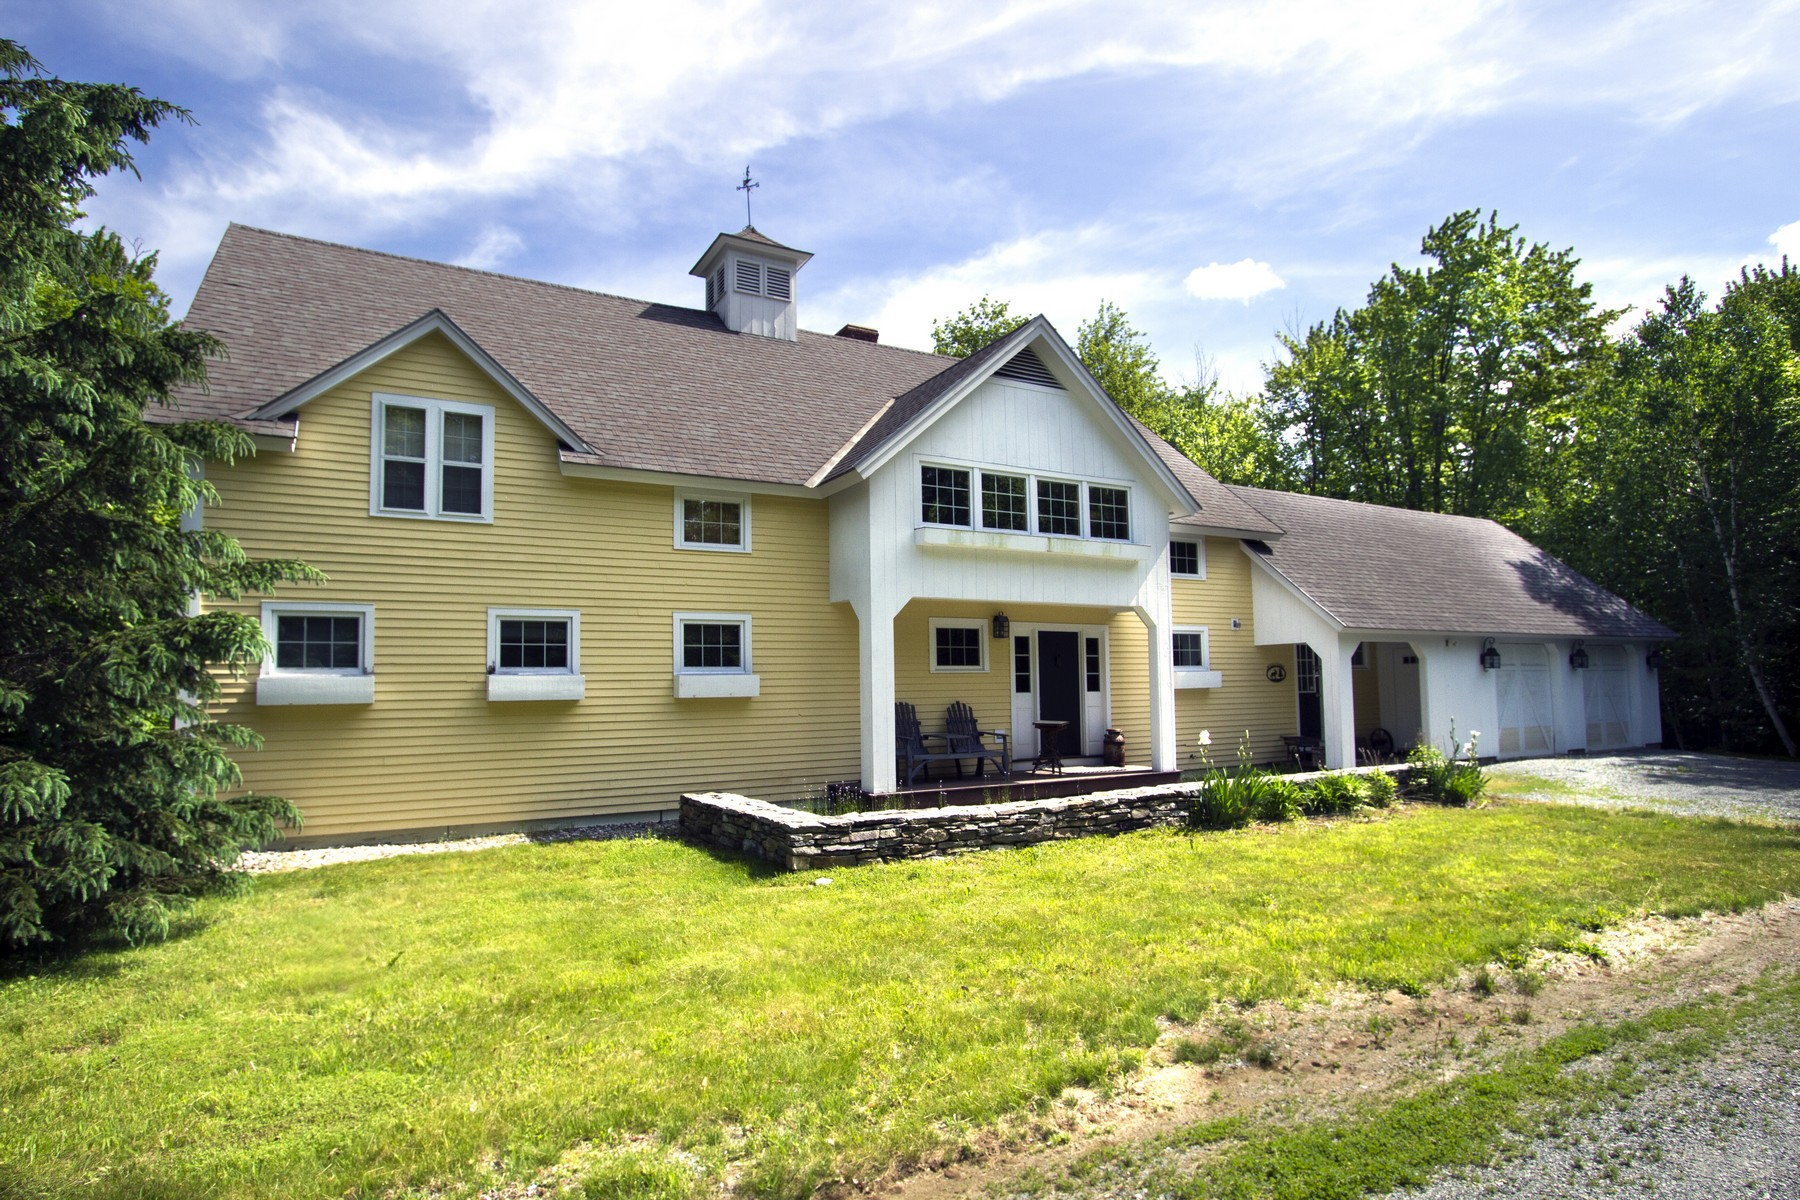 Single Family Home for Sale at 30 Stark Farms Road, Winhall 30 Stark Farms Rd Winhall, Vermont, 05340 United States